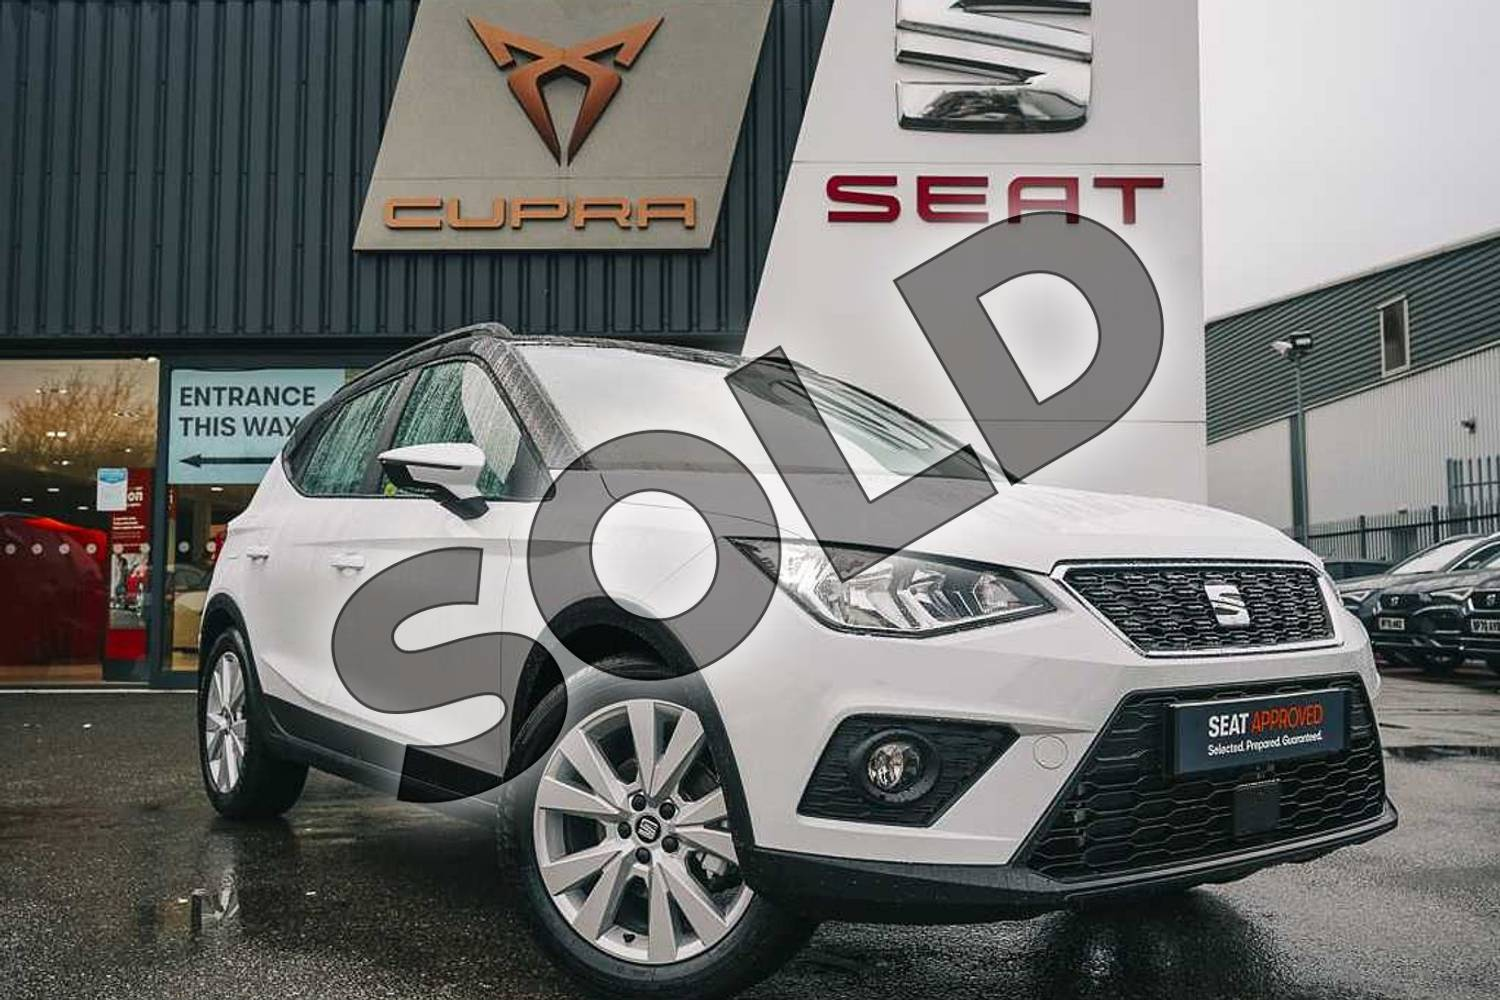 2021 SEAT Arona Hatchback 1.0 TSI 110 SE Technology (EZ) 5dr DSG in White at Listers SEAT Coventry